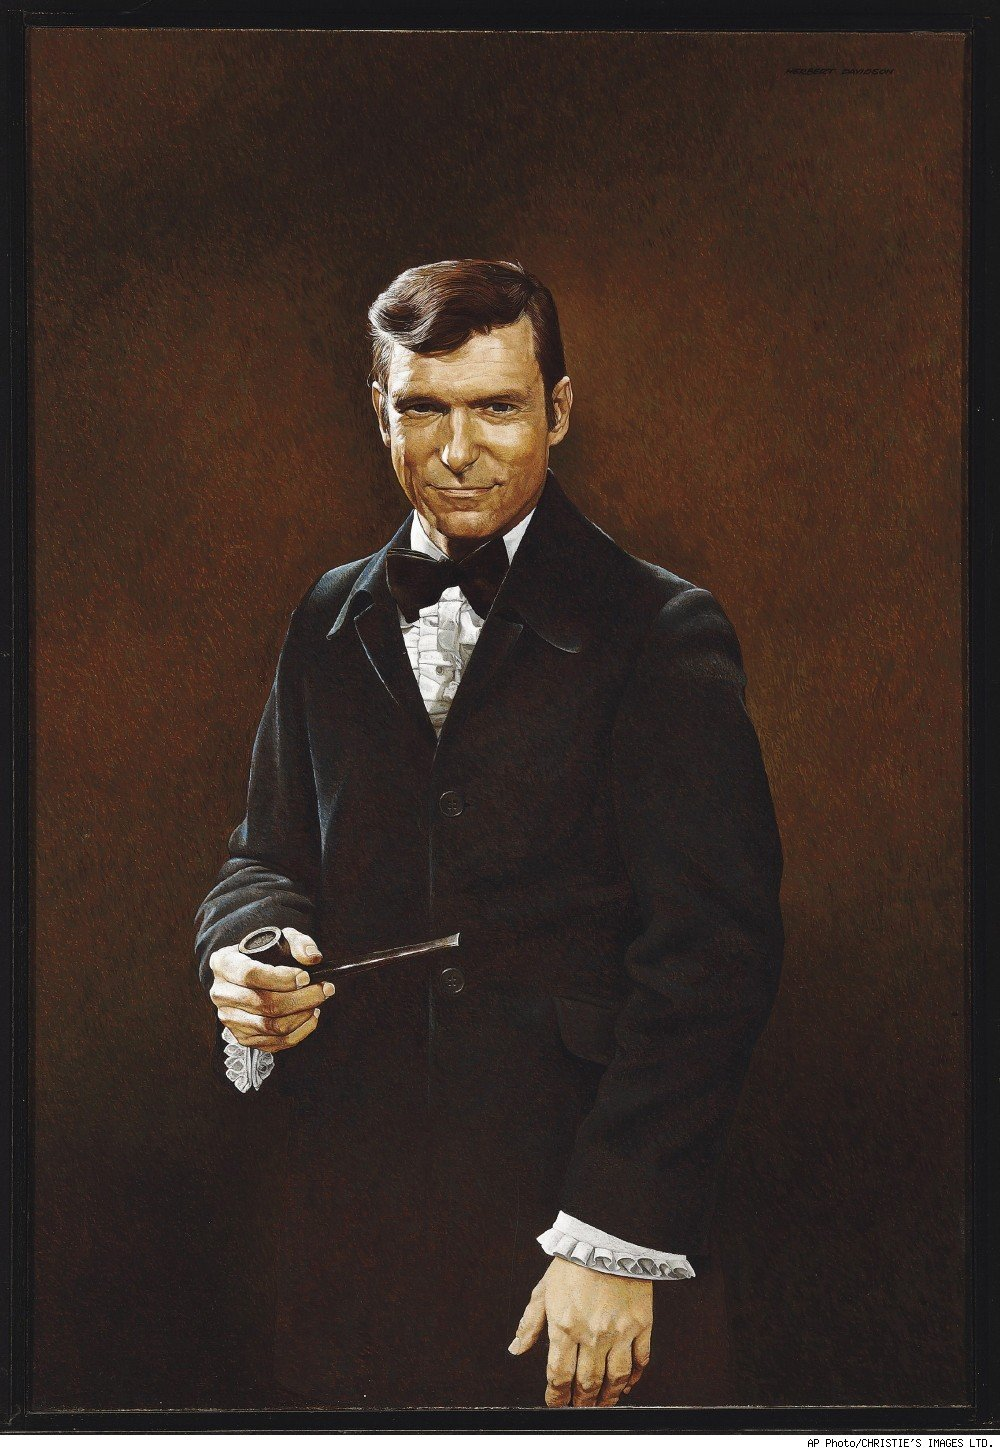 1970 oil painting by Herb Davidson of Hugh Hefner